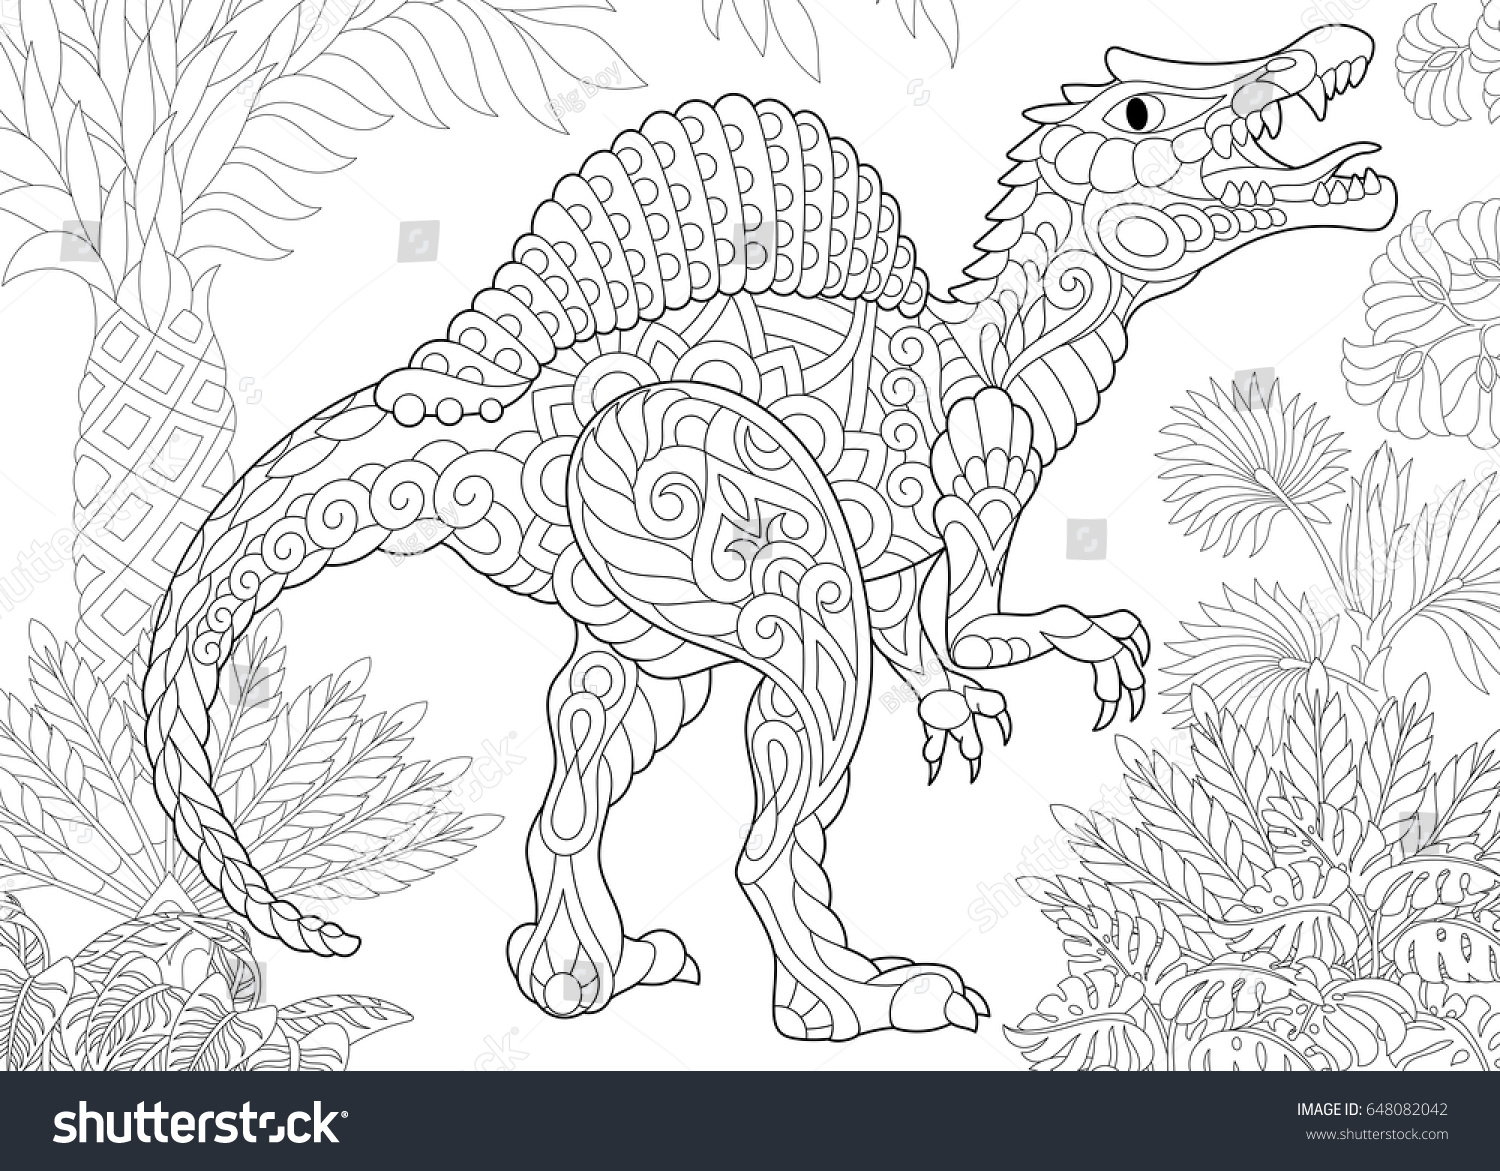 stylized spinosaurus dinosaur middle cretaceous period stock